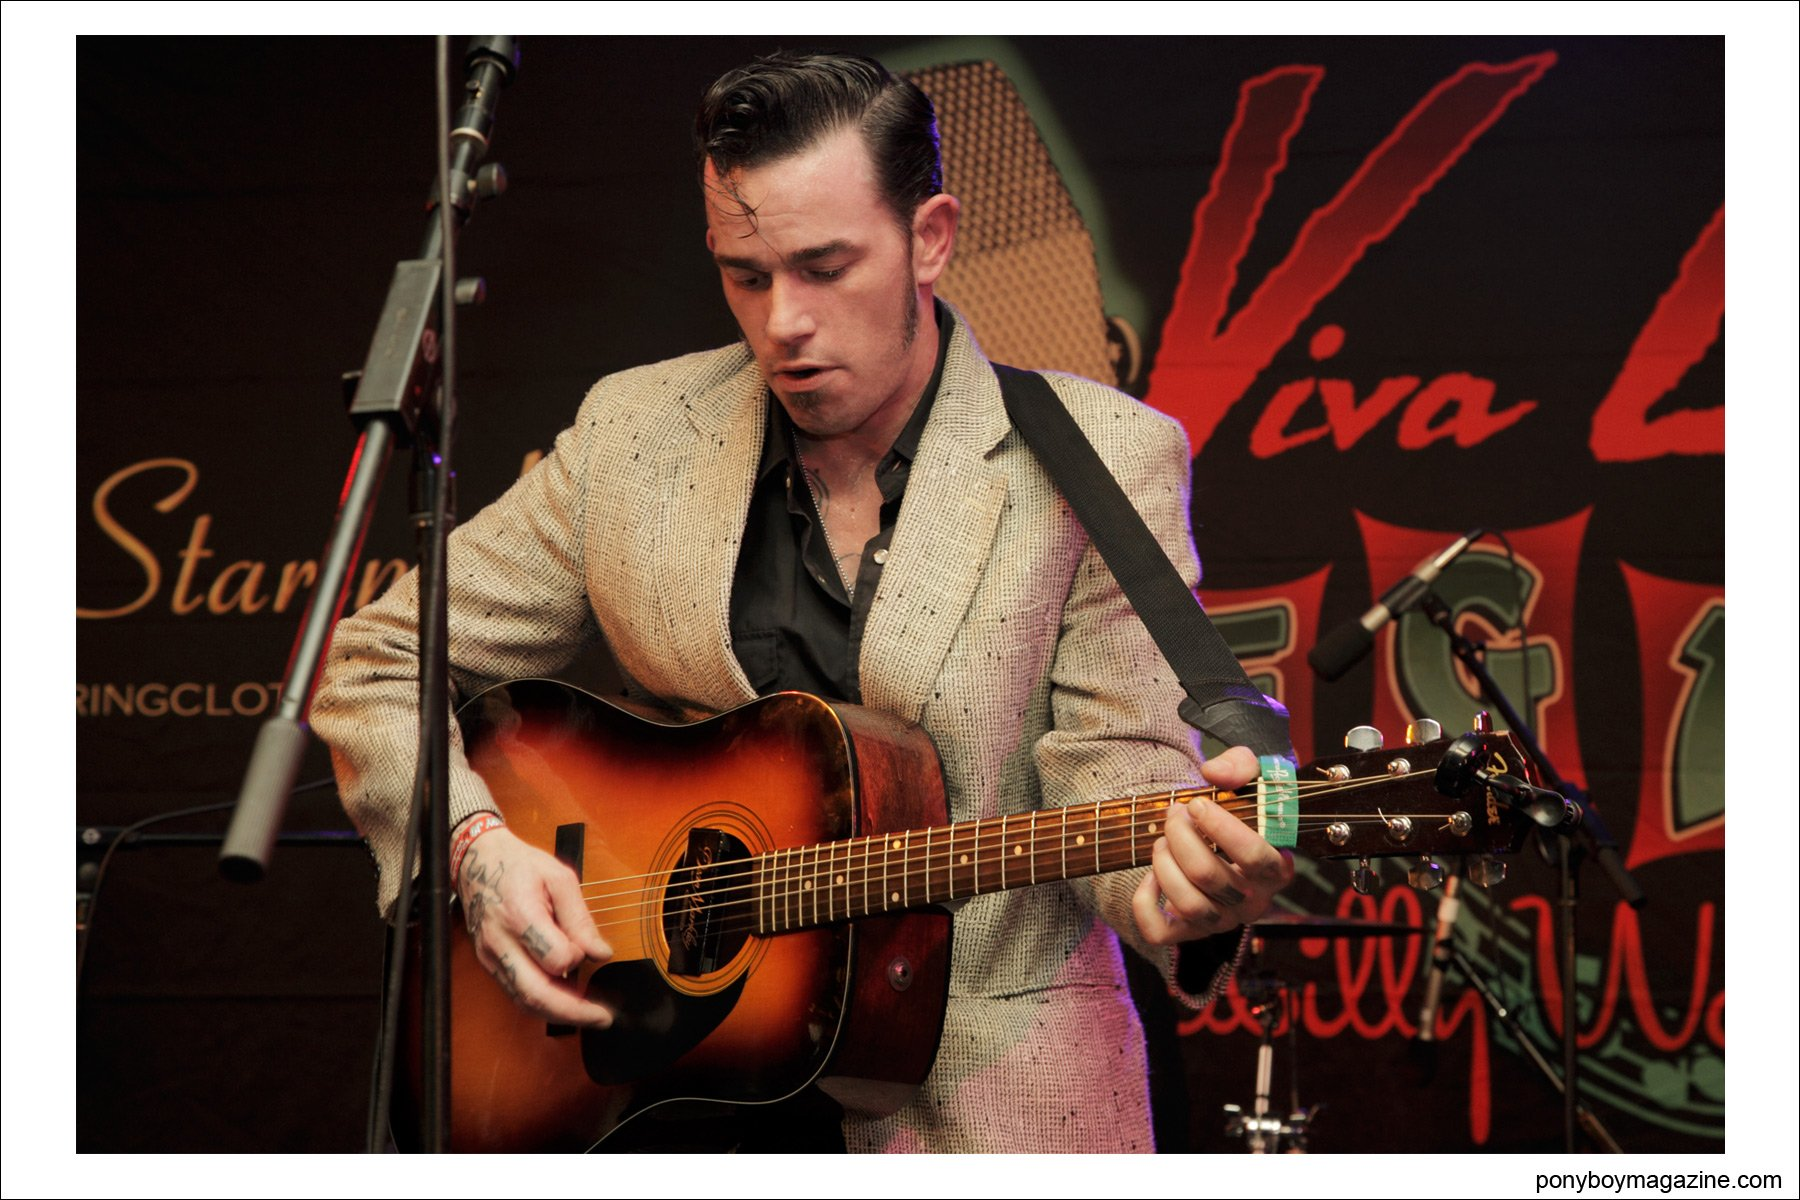 Portrait of Cash O'Riley, rockabilly performer, at Viva Las Vegas for Ponyboy Magazine by Alexander Thompson.